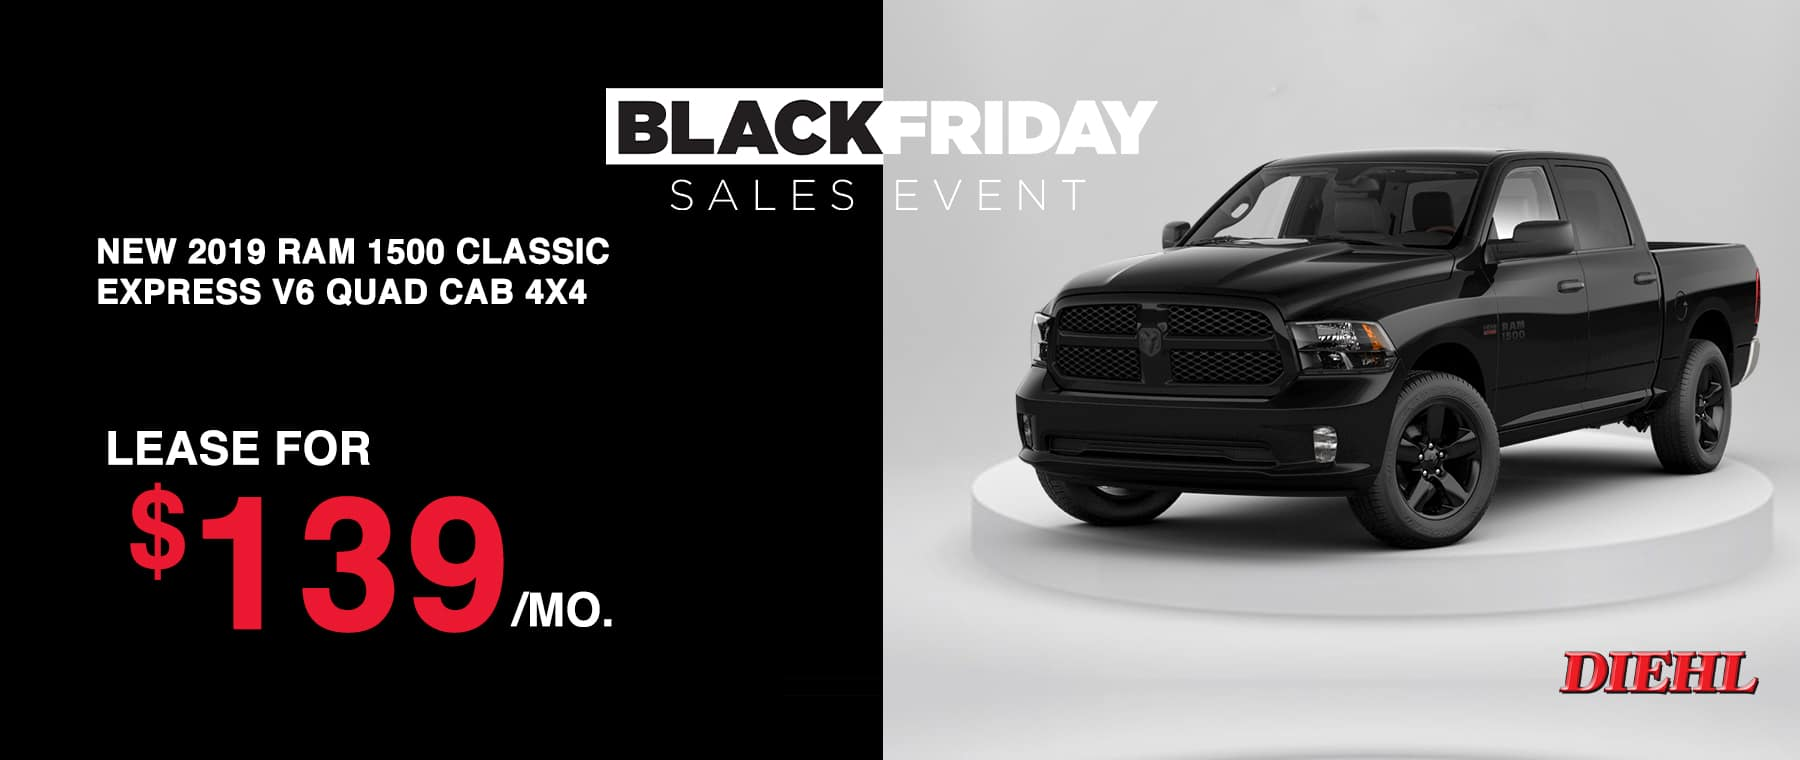 D1910104-RAMCLASSIC Diehl Robinson Chrysler dodge jeep ram Black Friday sales event lease special new vehicle special sale year end savings employee pricing plus